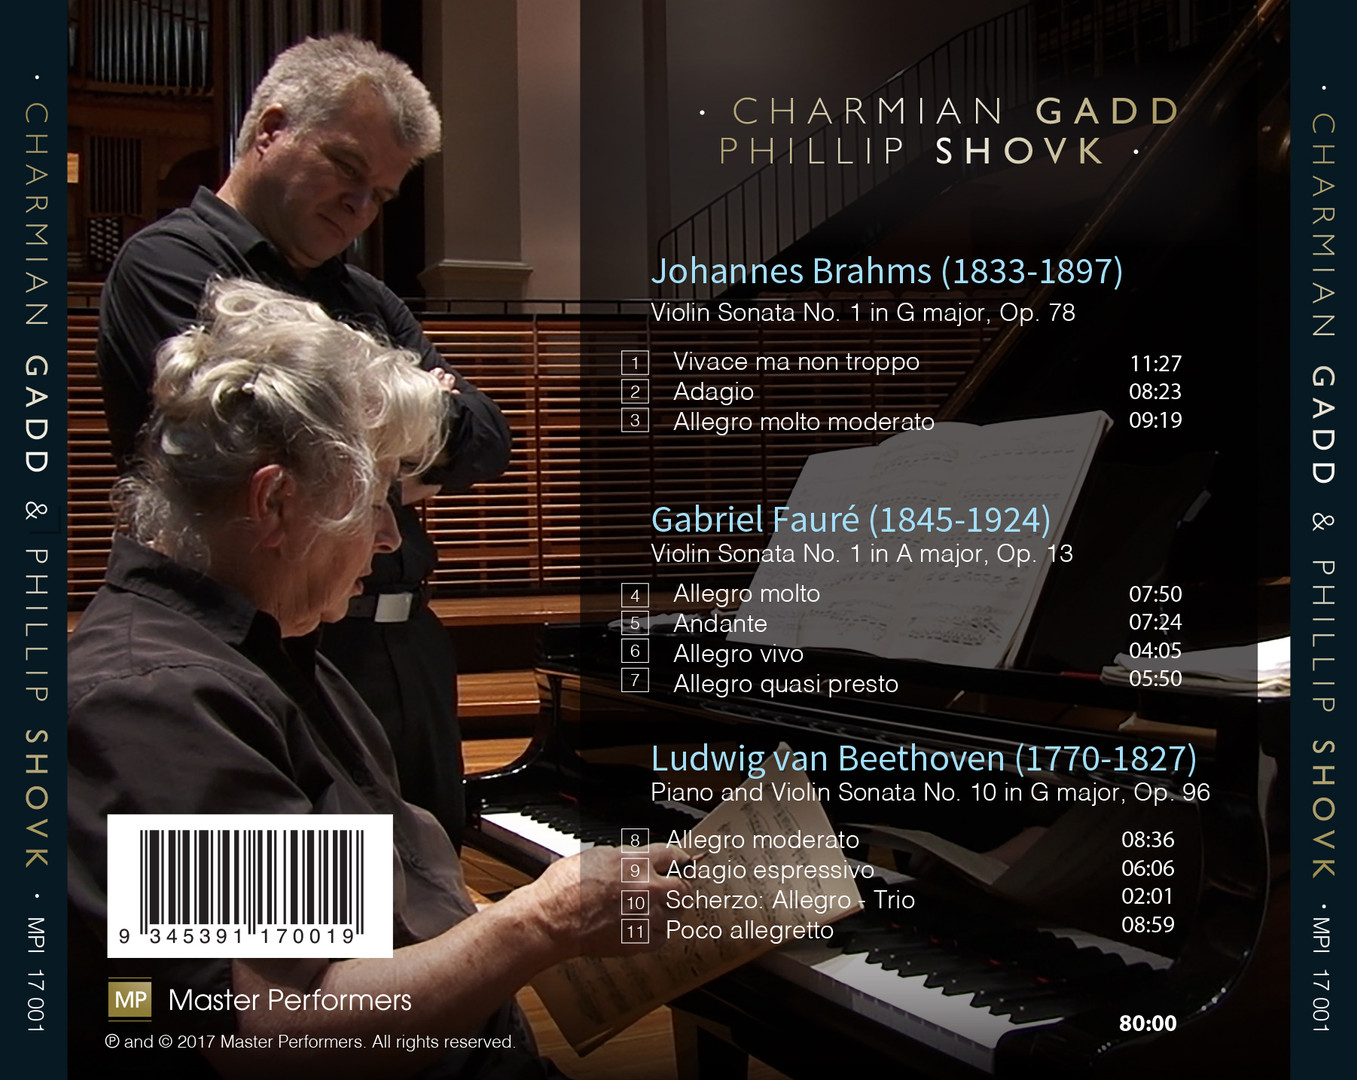 Phillip Shovk and Charmian Gadd Brahms, Faure, Beethoven CD Tray